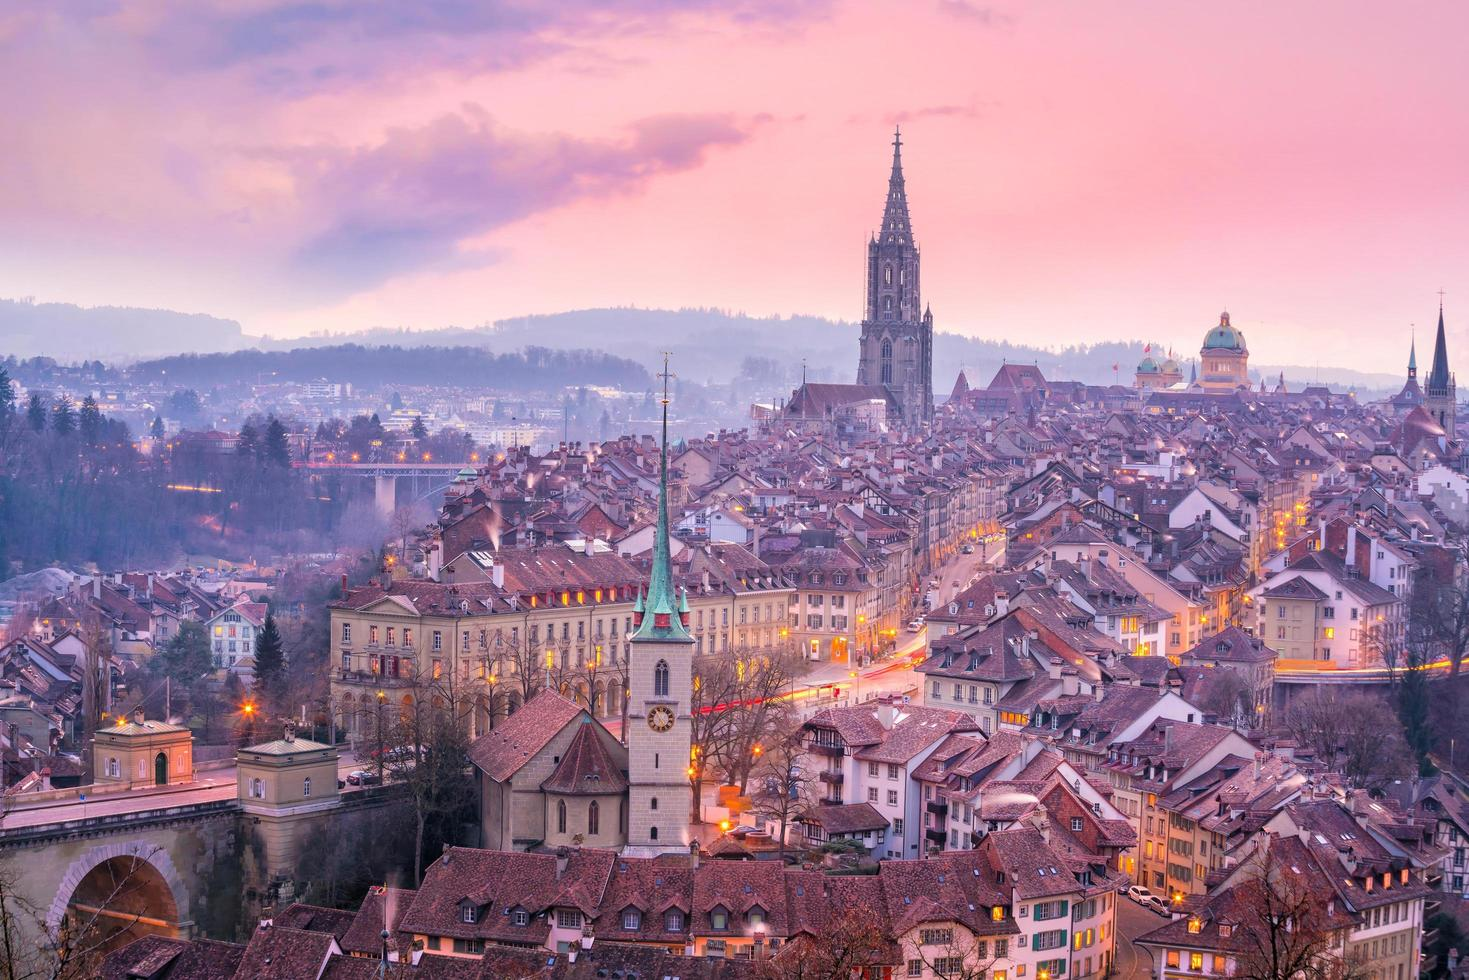 Old Town of Bern, capital of Switzerland in Europe photo